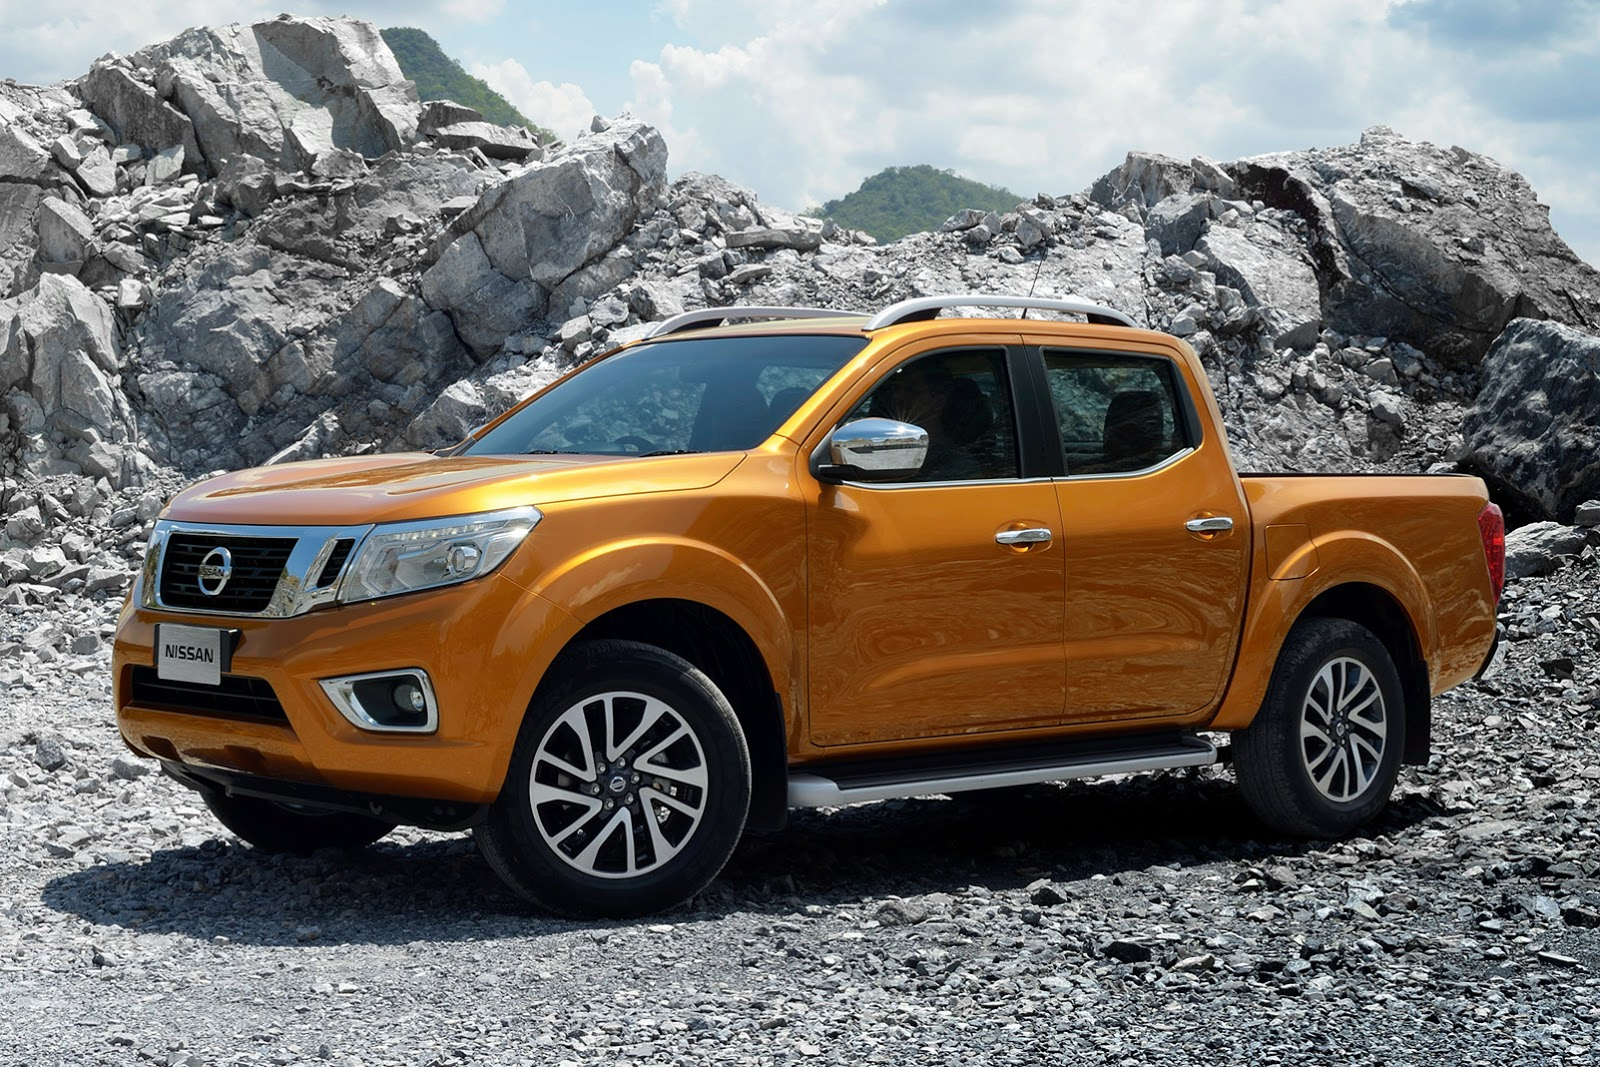 8 photos 2015 nissan navara